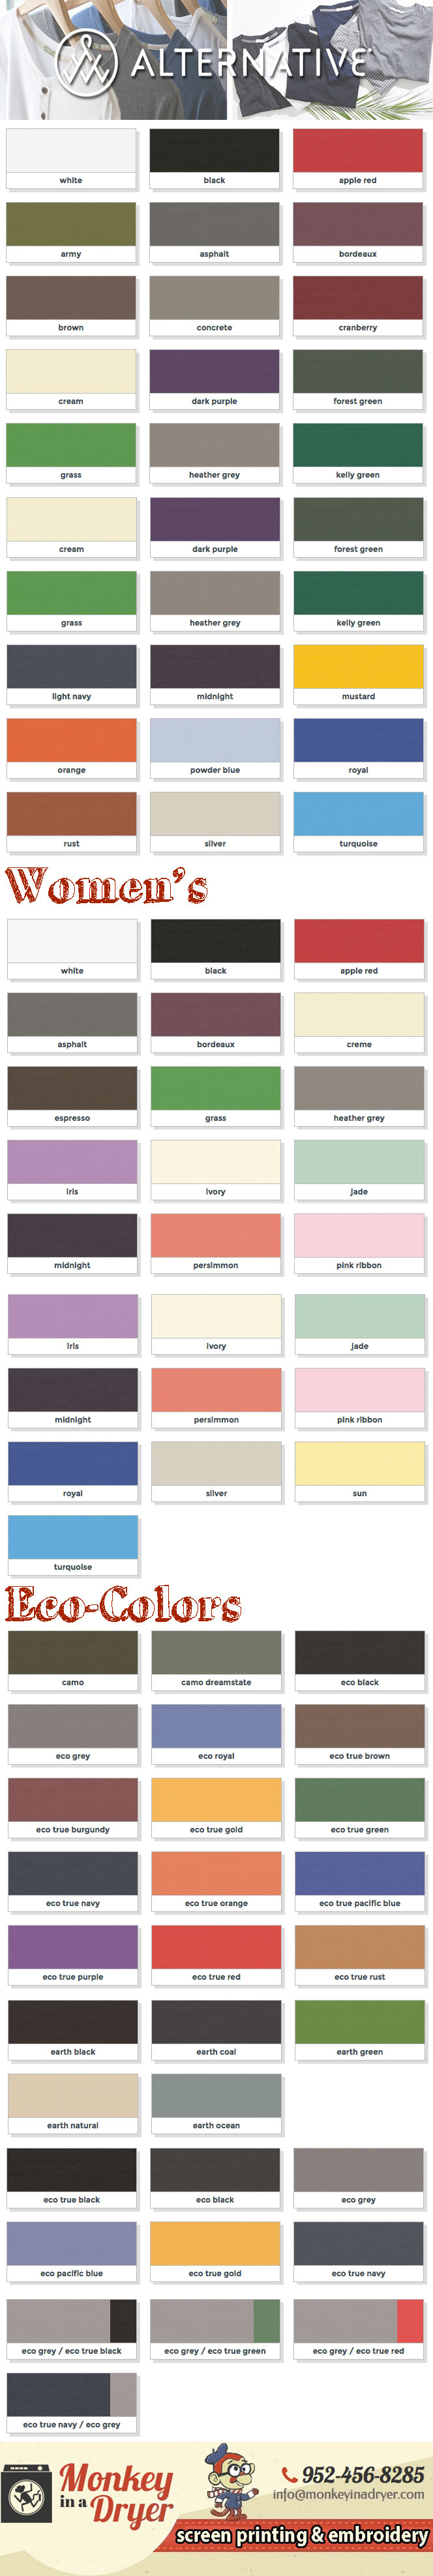 Alternative Apparel Swatch Color Chart